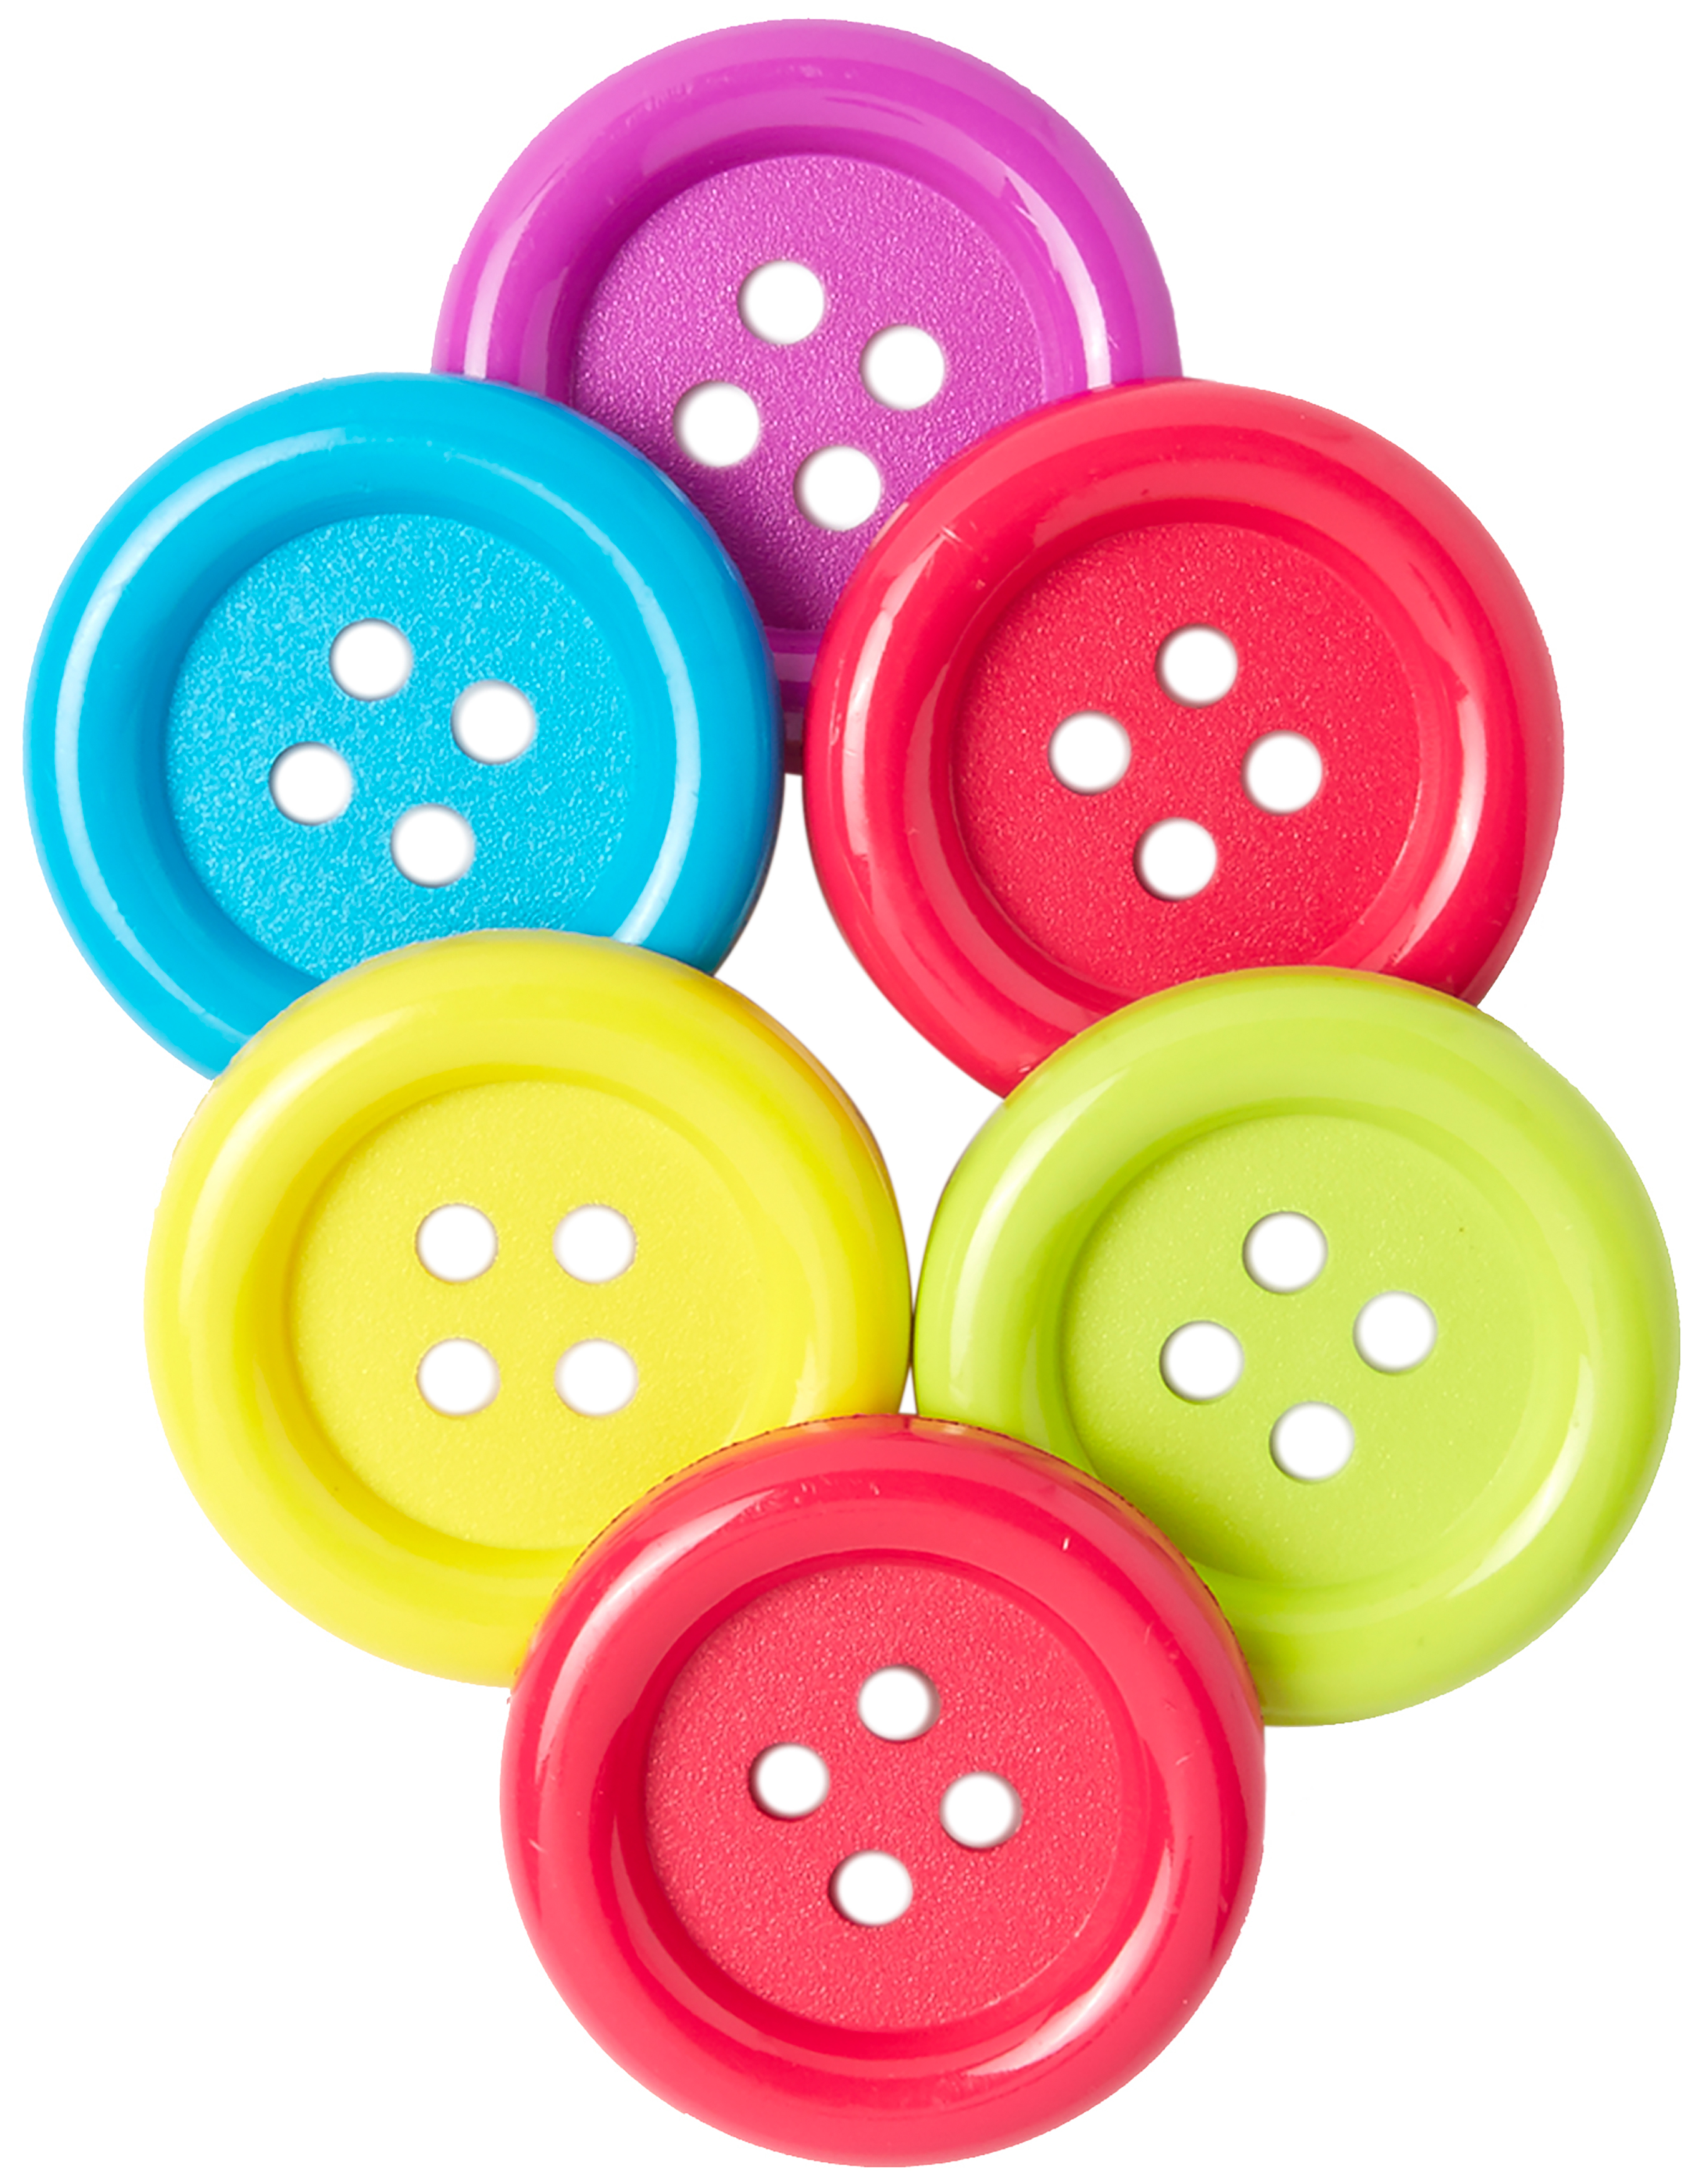 Favorite Findings Buttons - Fun